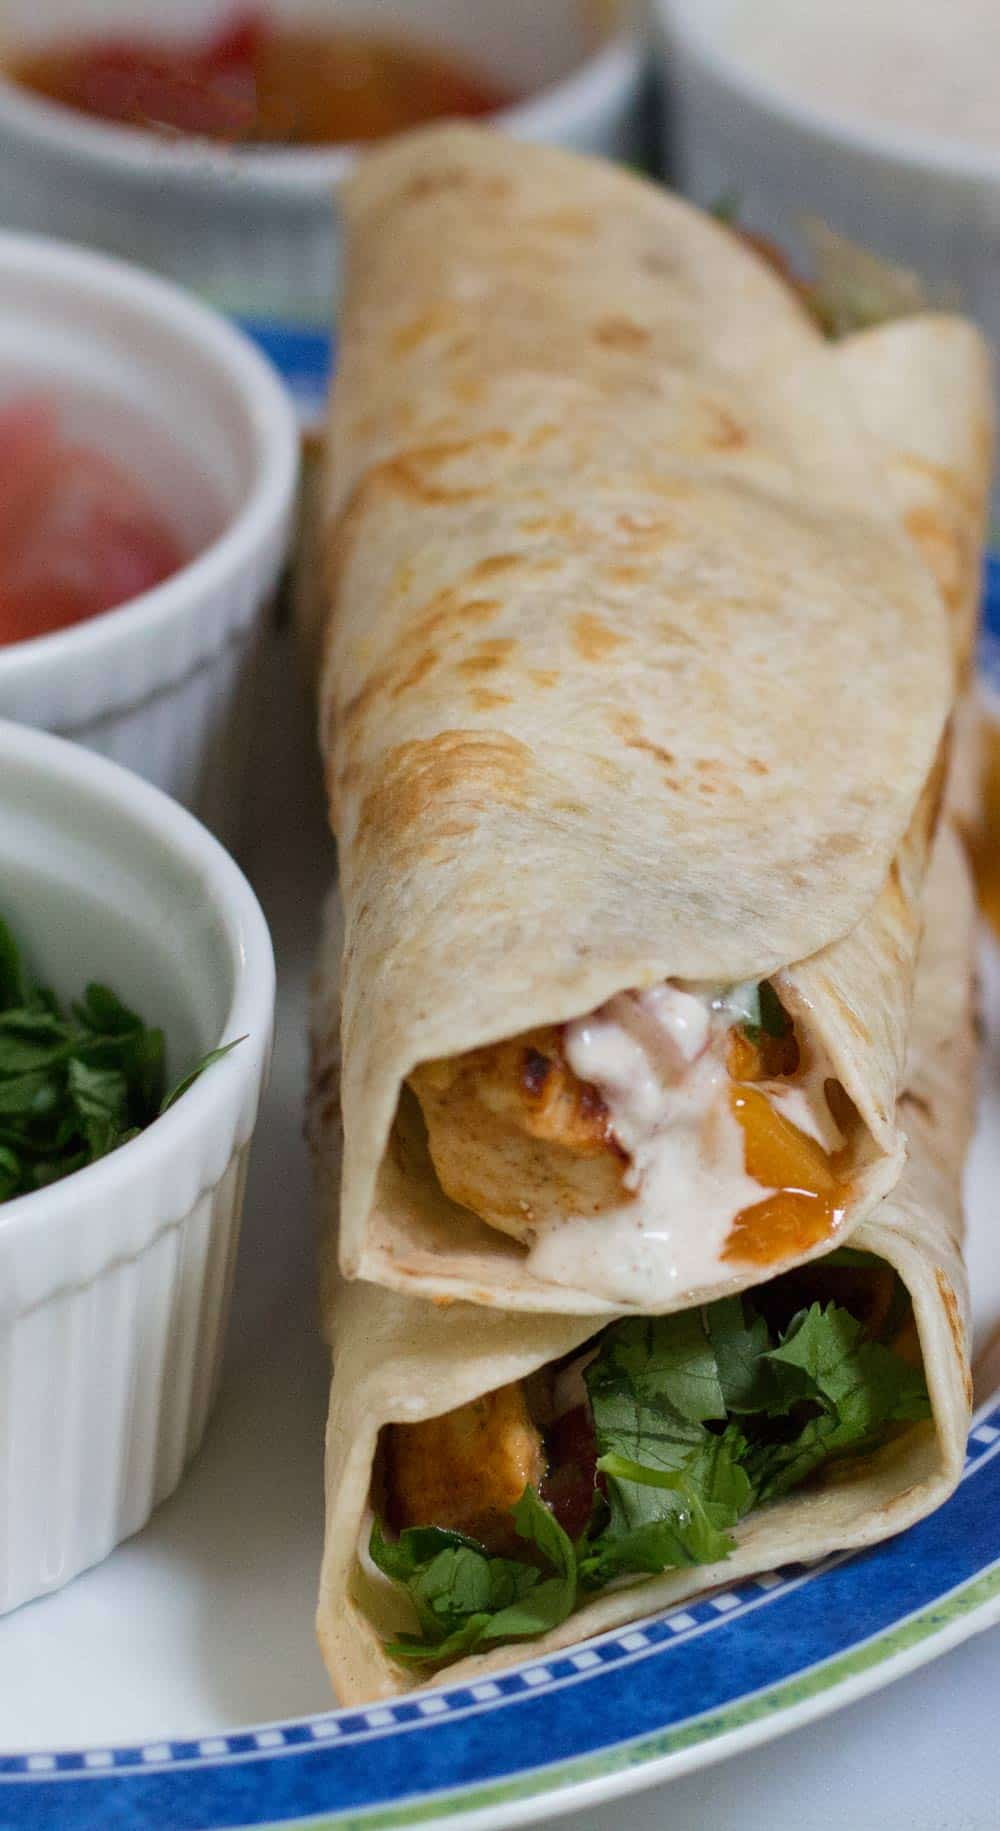 Two chicken kathi rolls surrounded by toppings